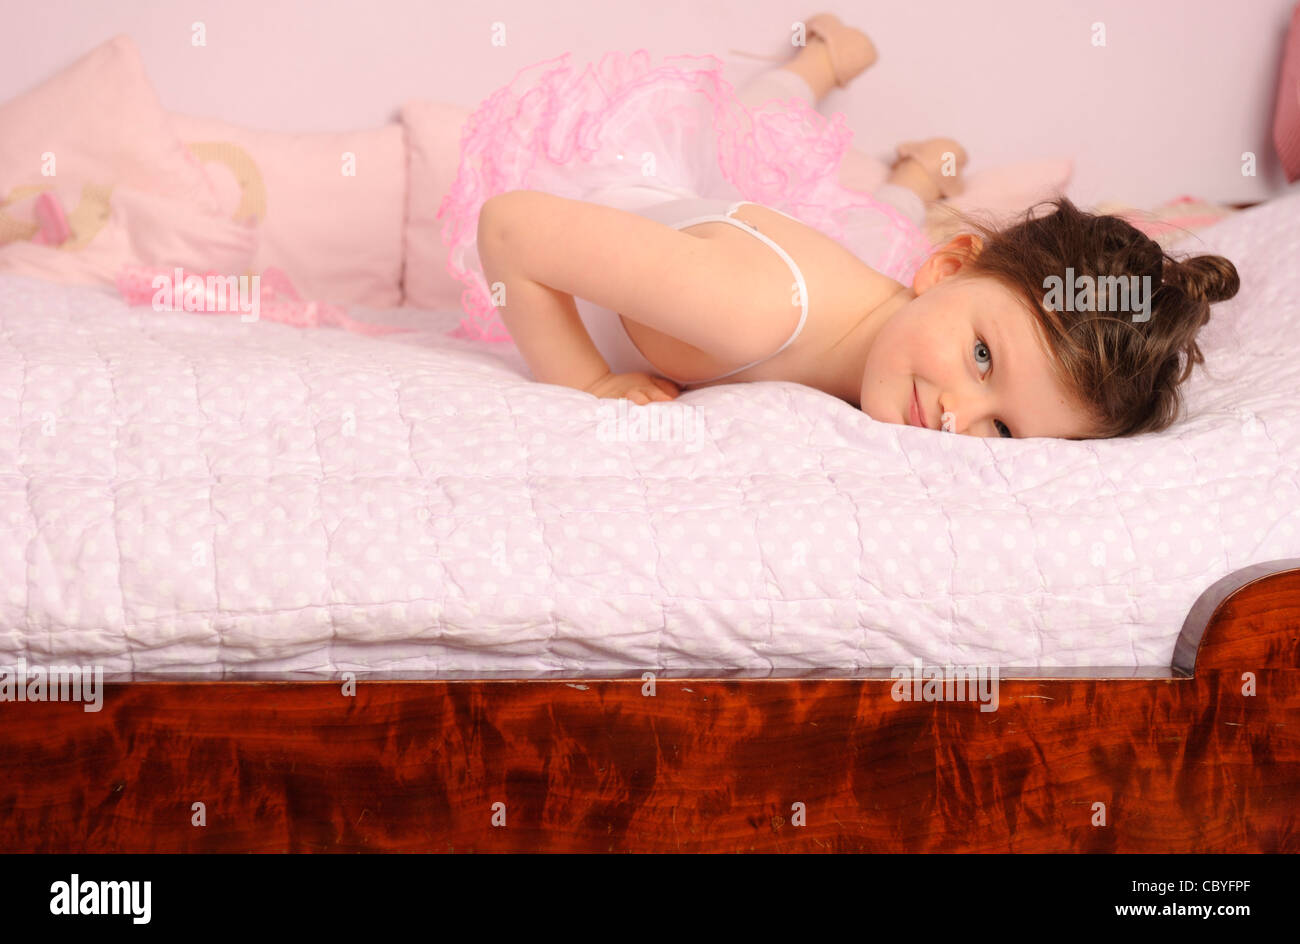 Girl of five years posing in her ballet outfit on her bed. - Stock Image